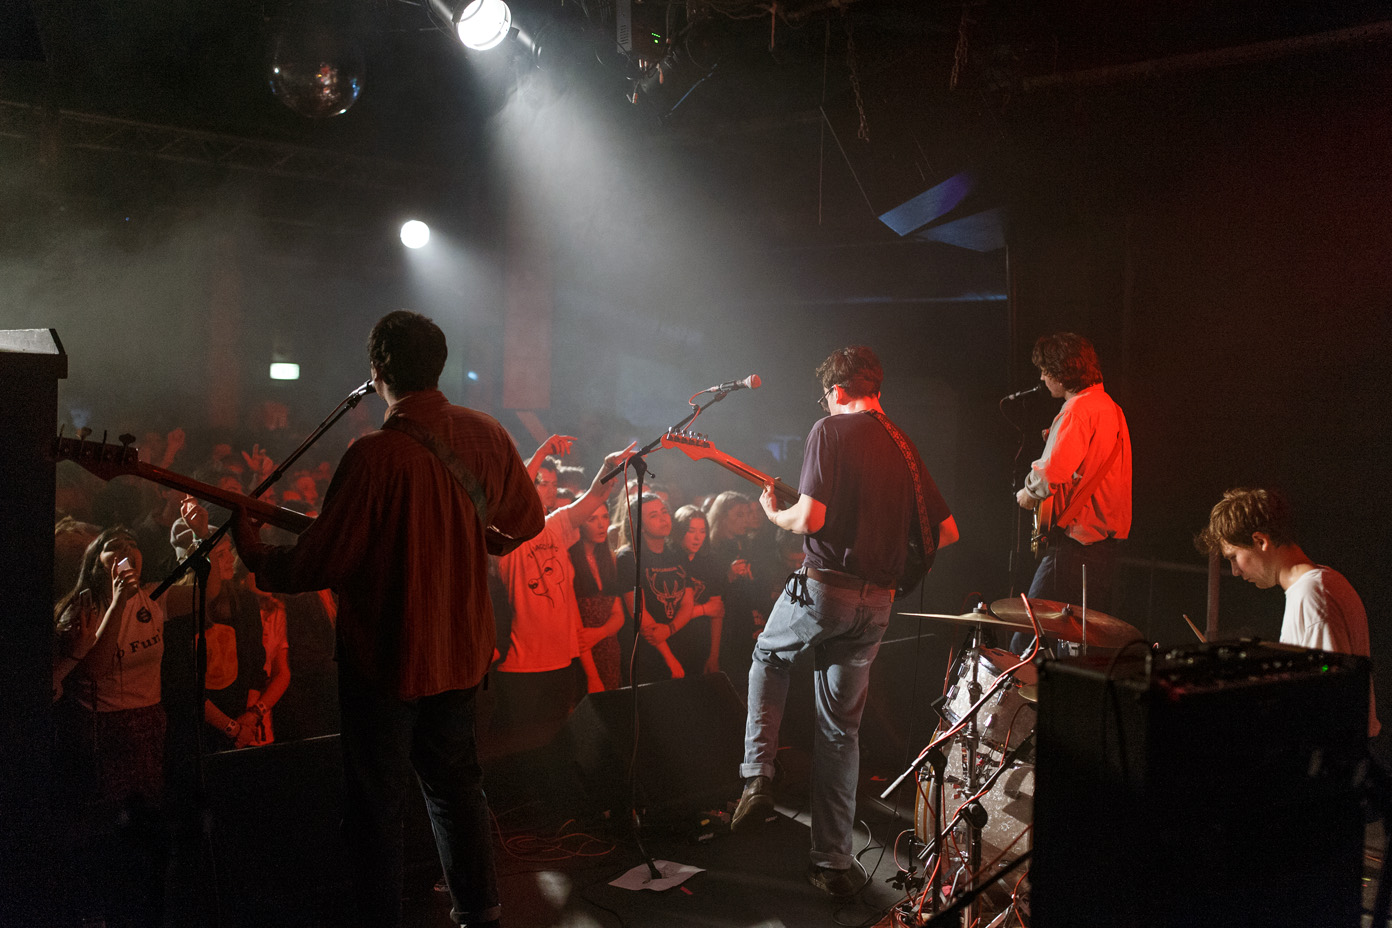 The Magic Gang performing at Plug in Sheffield on 15 October 2016